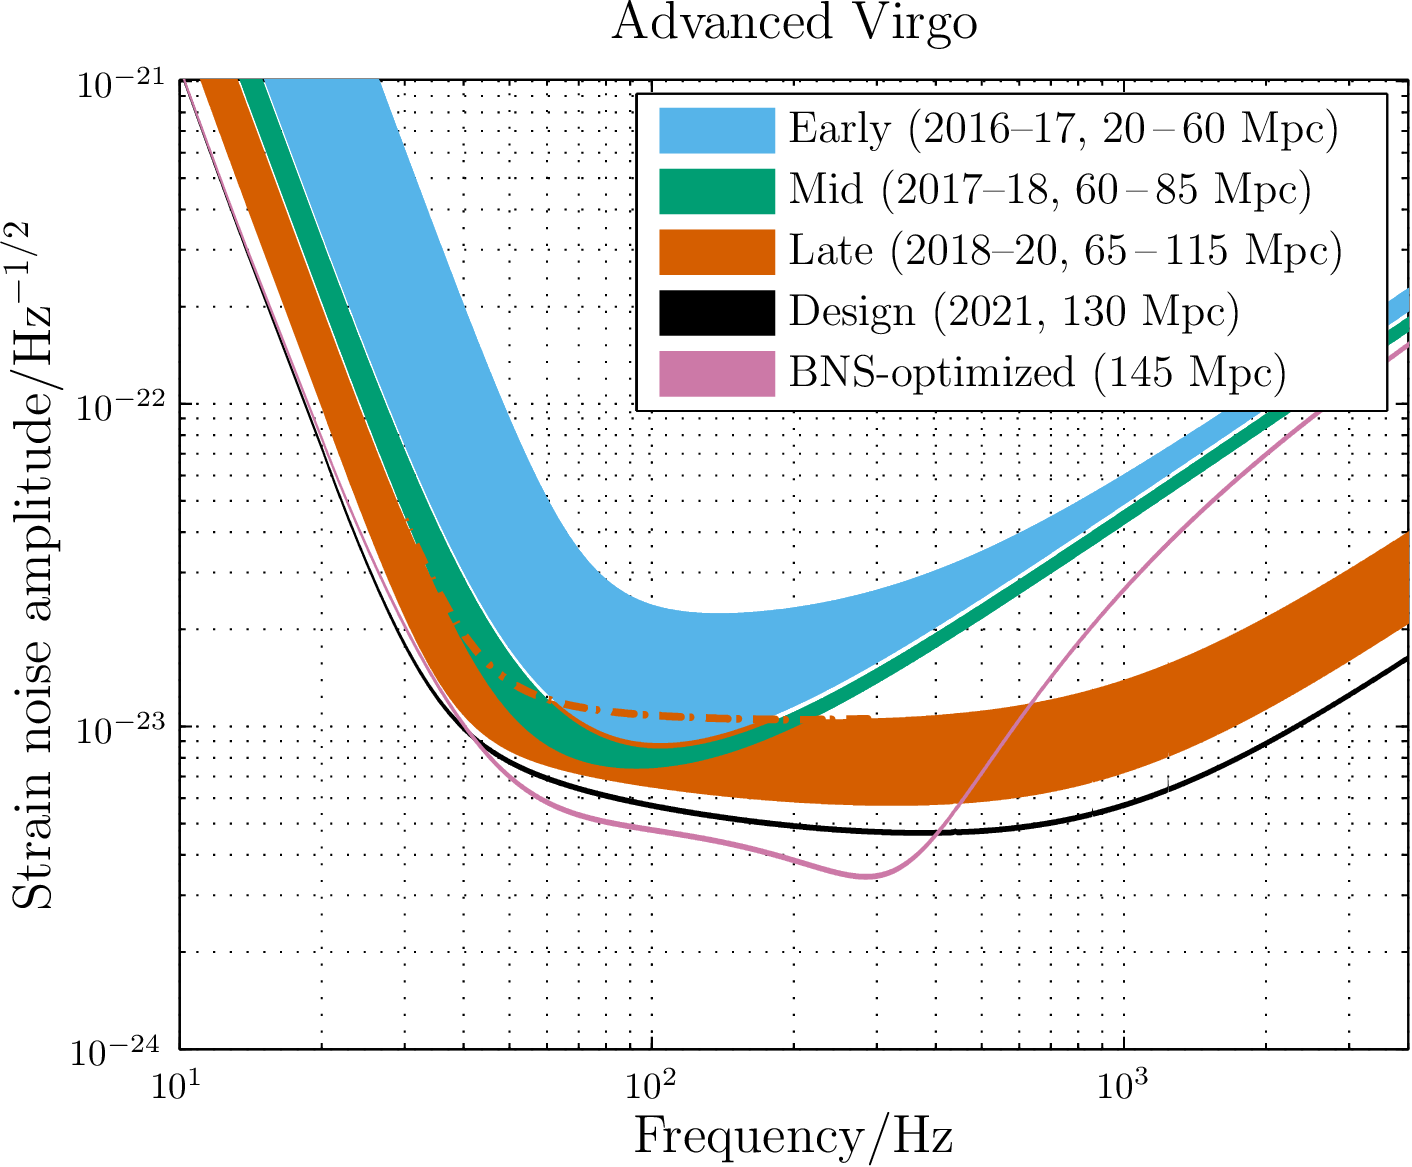 Possible evolution of the sensitivity of the Advanced Virgo detector with time